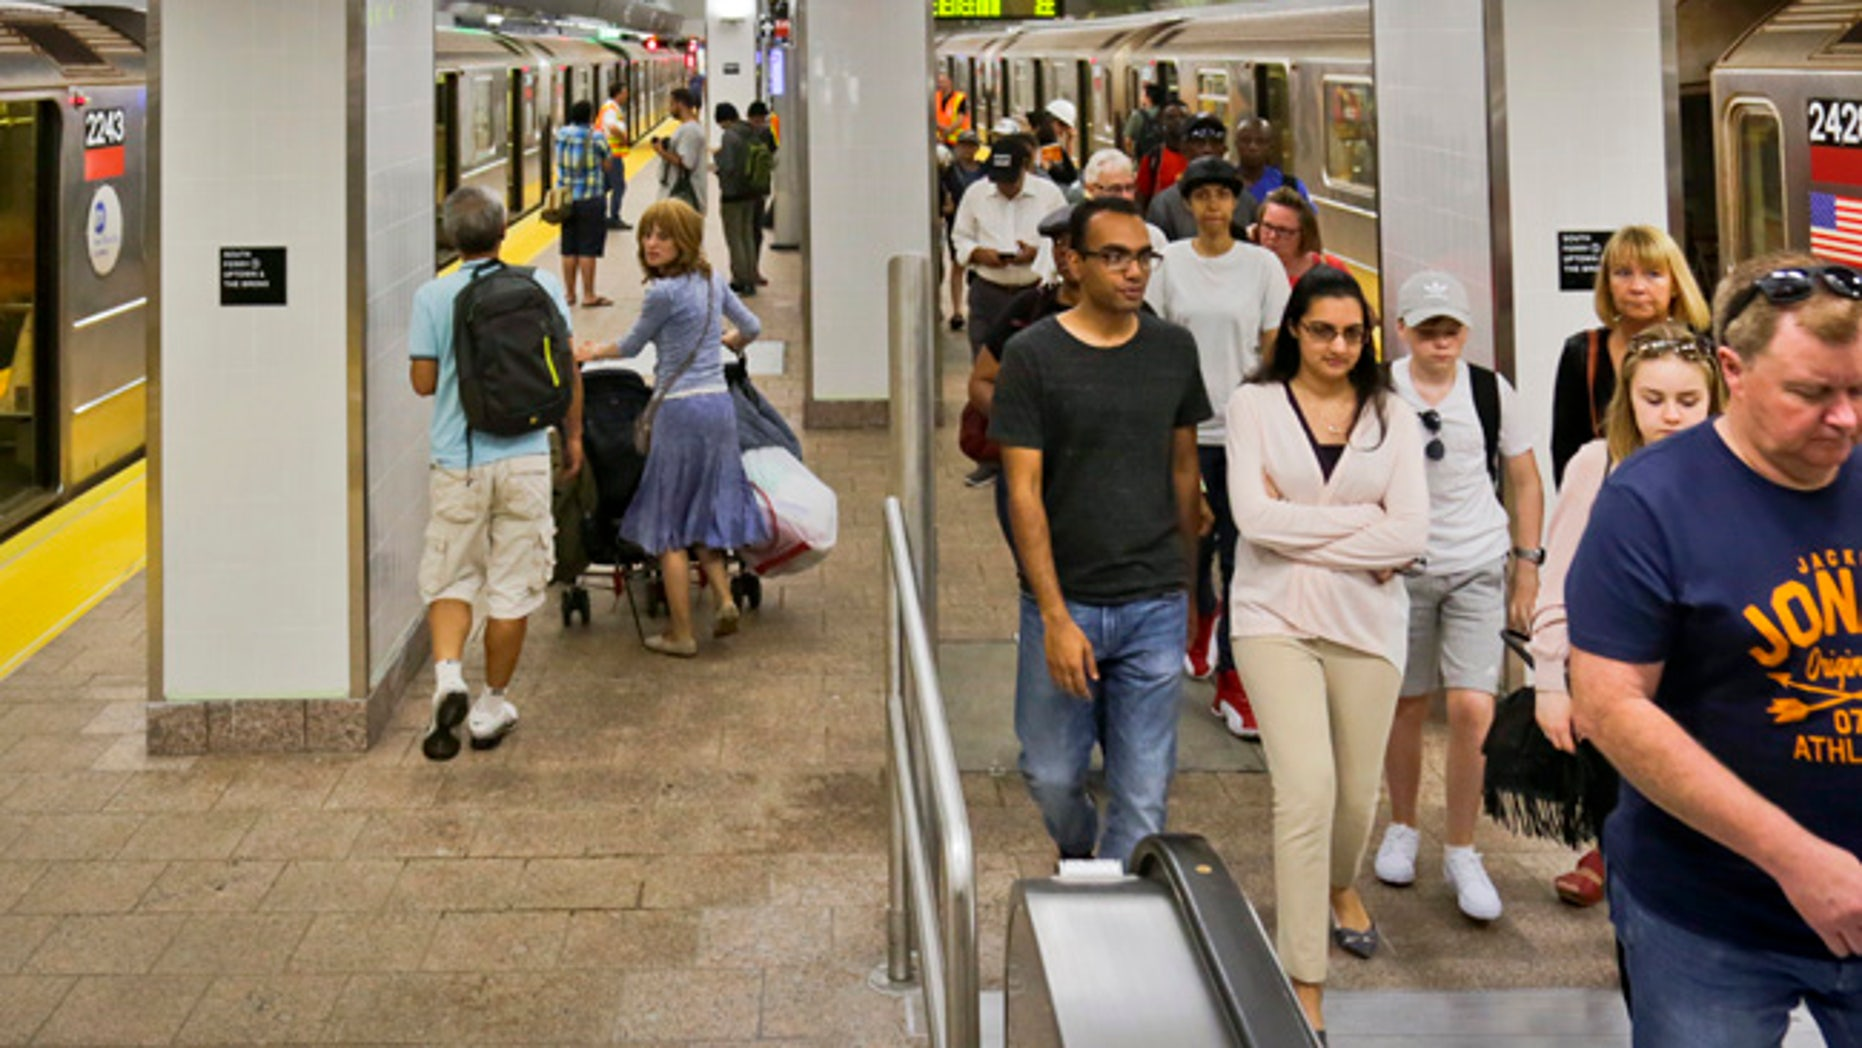 Passengers leave the No. 1 train at the South Ferry Station, Tuesday June 27, 2017, in New York. The station reopened Tuesday, nearly five years after it was flooded by Superstorm Sandy in October 2012.  (AP Photo/Bebeto Matthews)